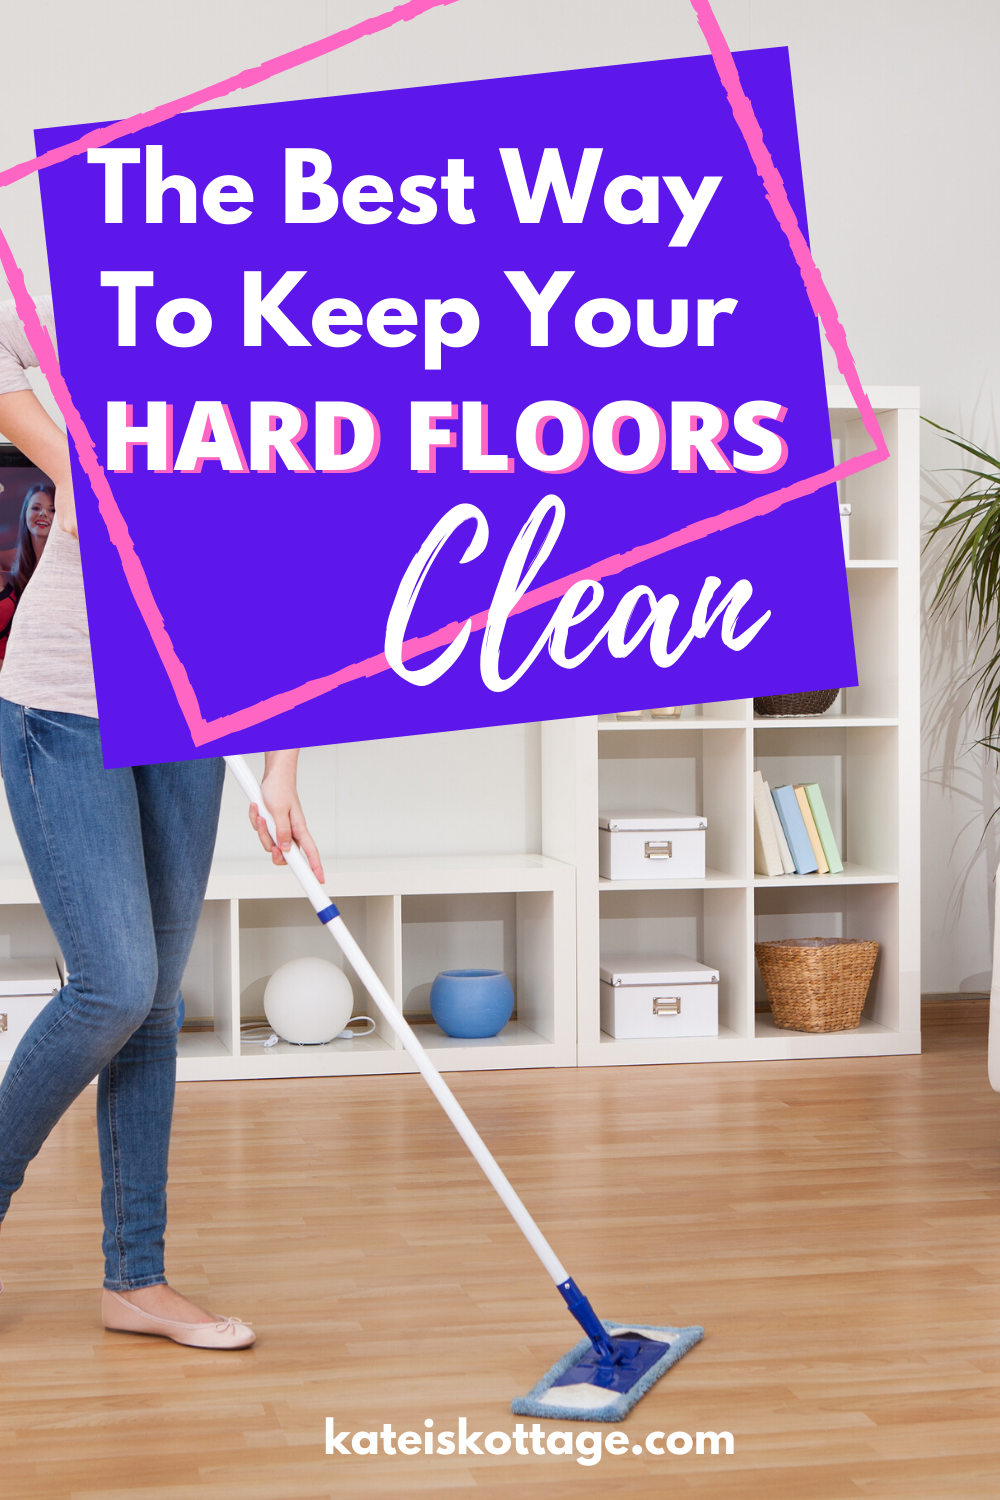 The Best Way To Keep Your Hard Floors Clean Cleaning Cleaning Hacks Flooring